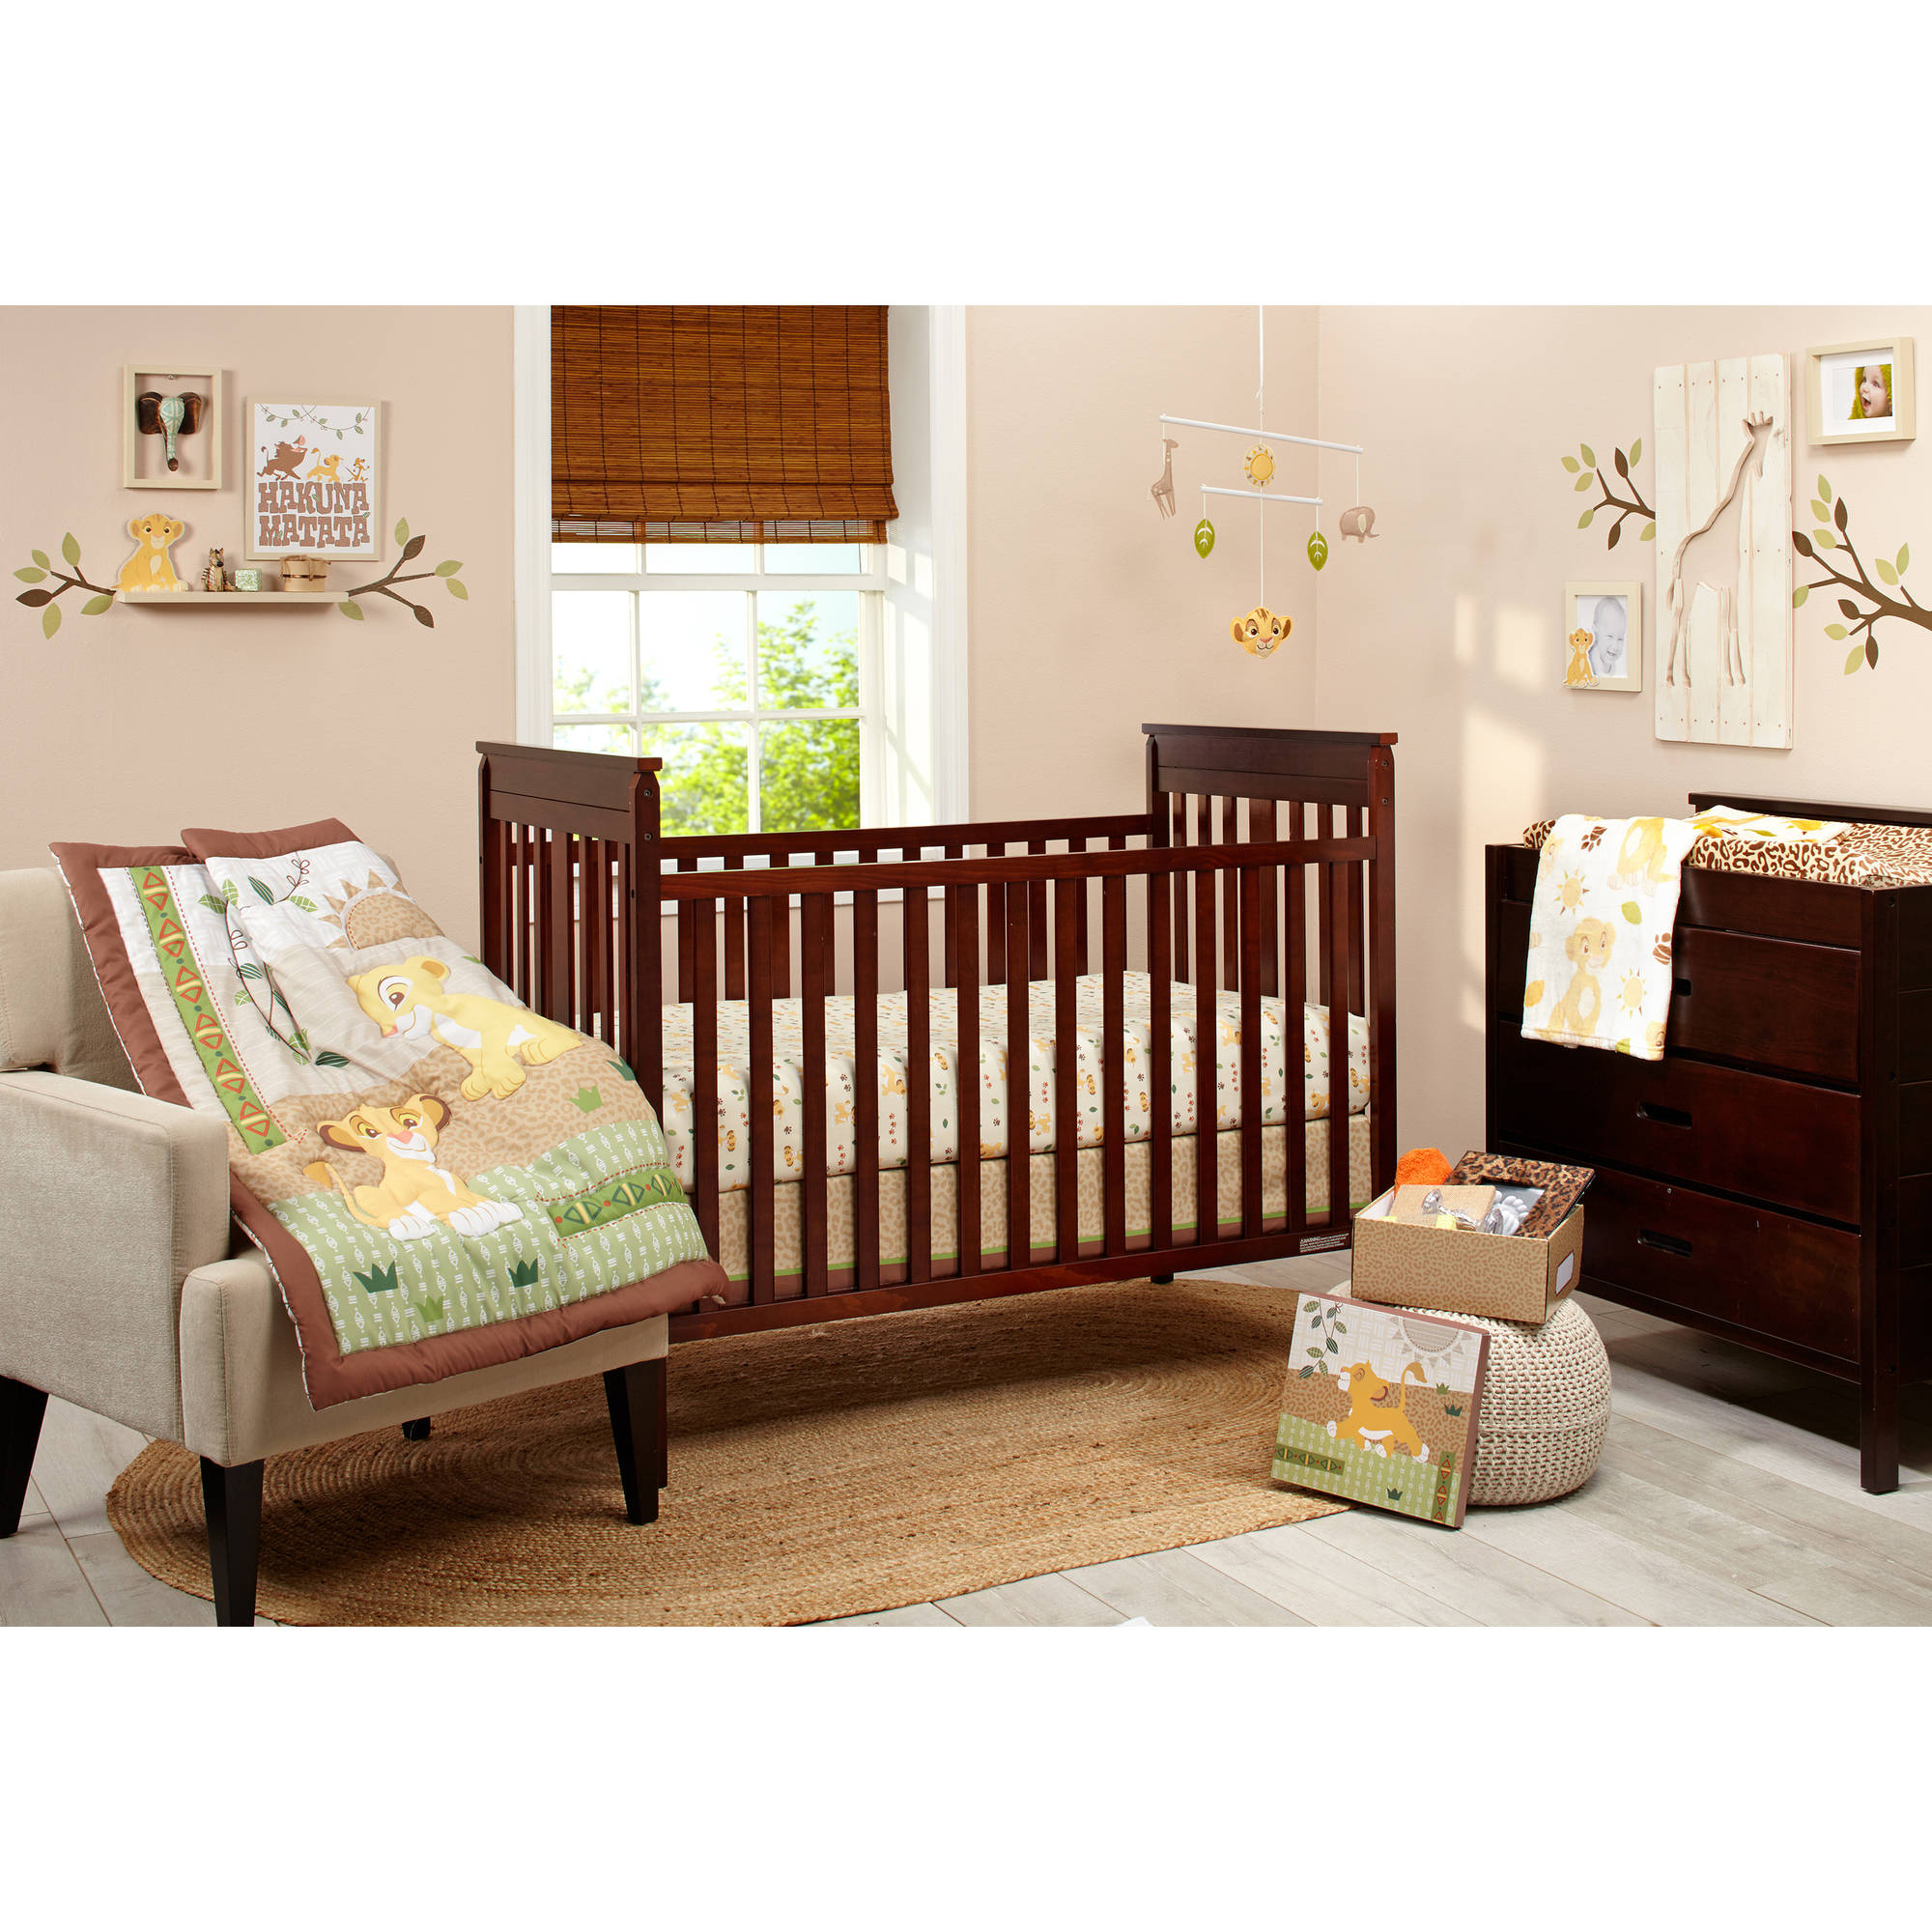 Lion King Under the Sun 4-Piece Crib Bedding Set